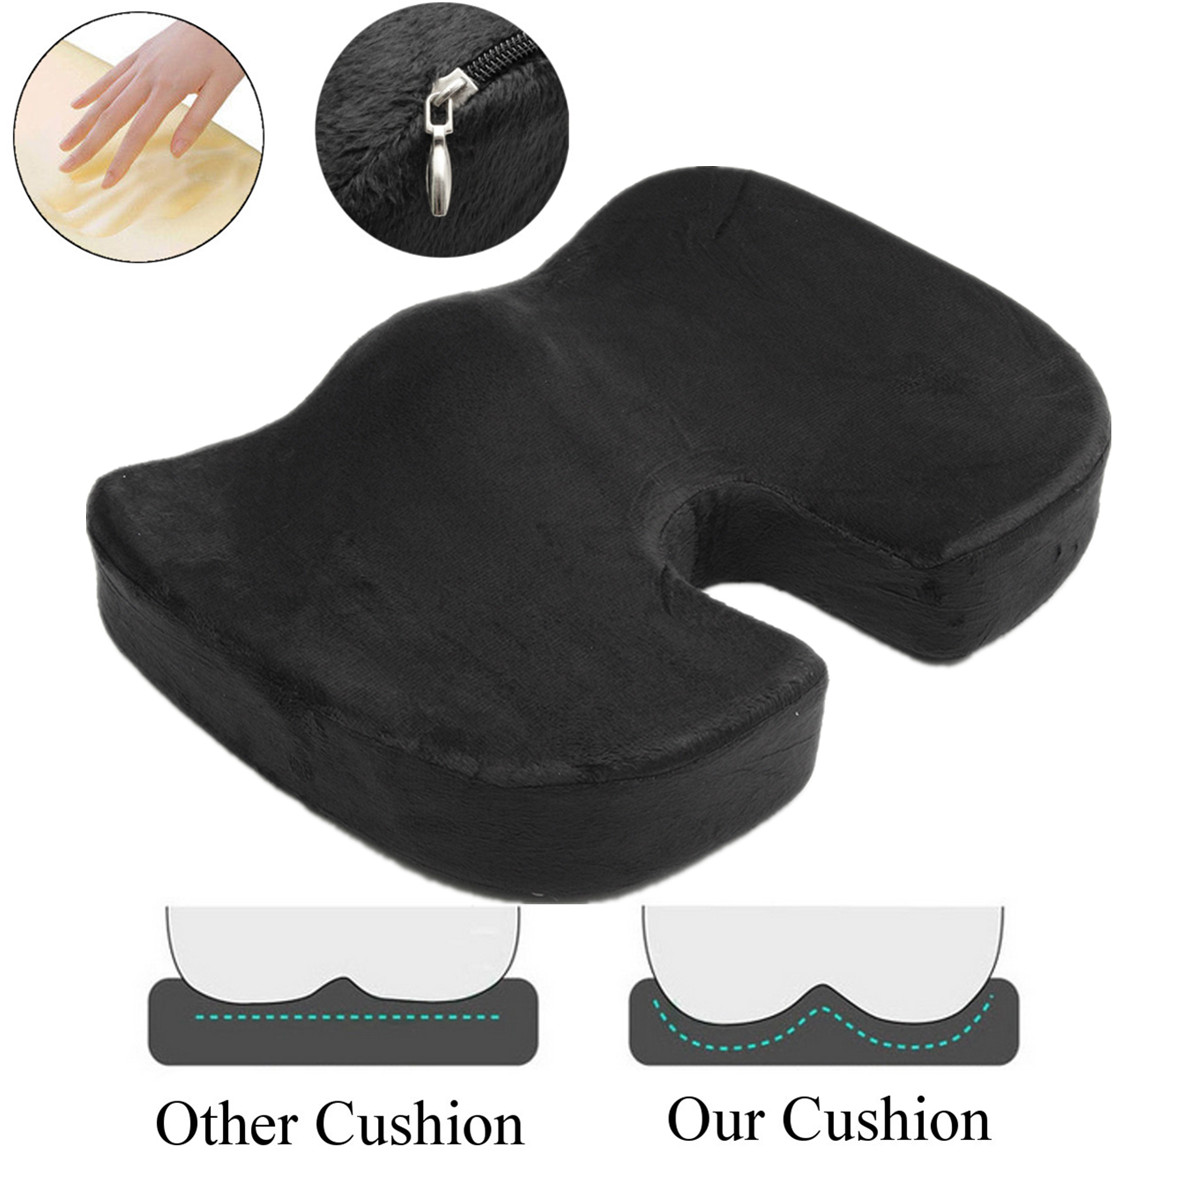 100% Memory Foam Office Chair Coccyx Seat Cushion For Orthopedic Tailbone Pain Sciatica & Back Pain Relief